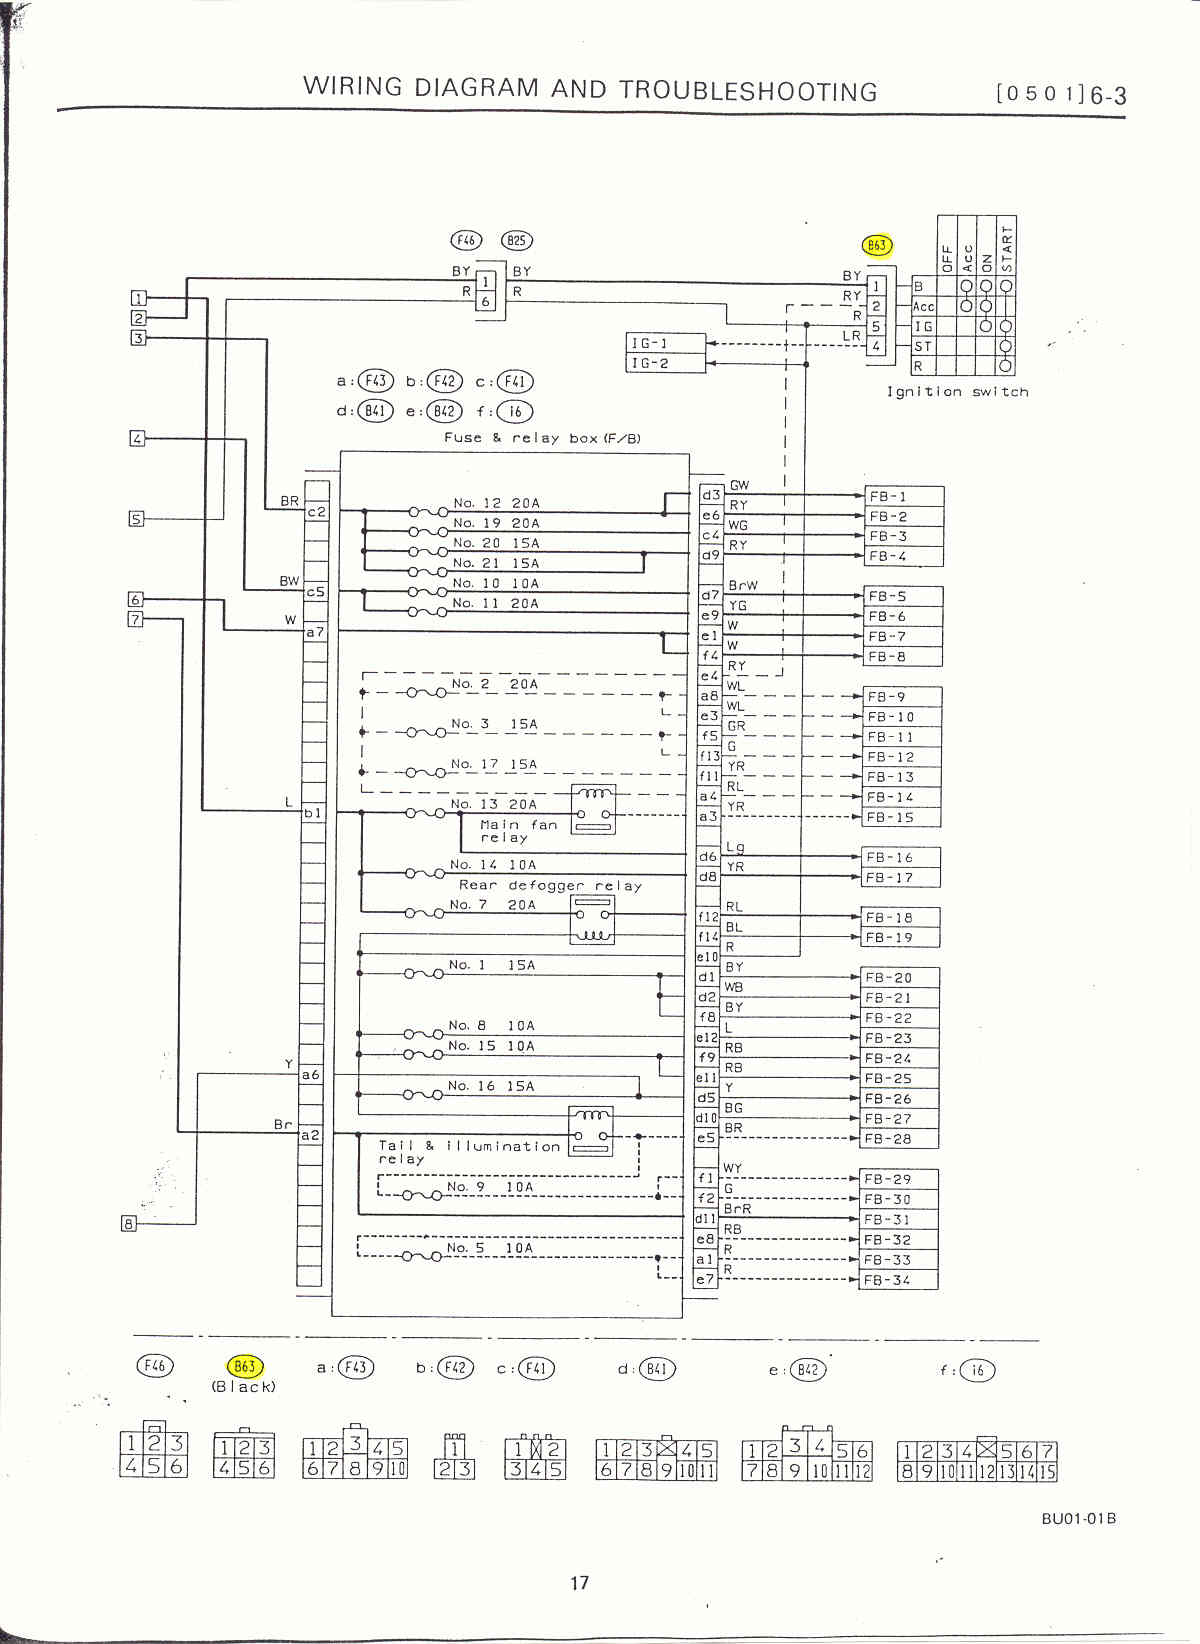 1983 subaru wiring diagram